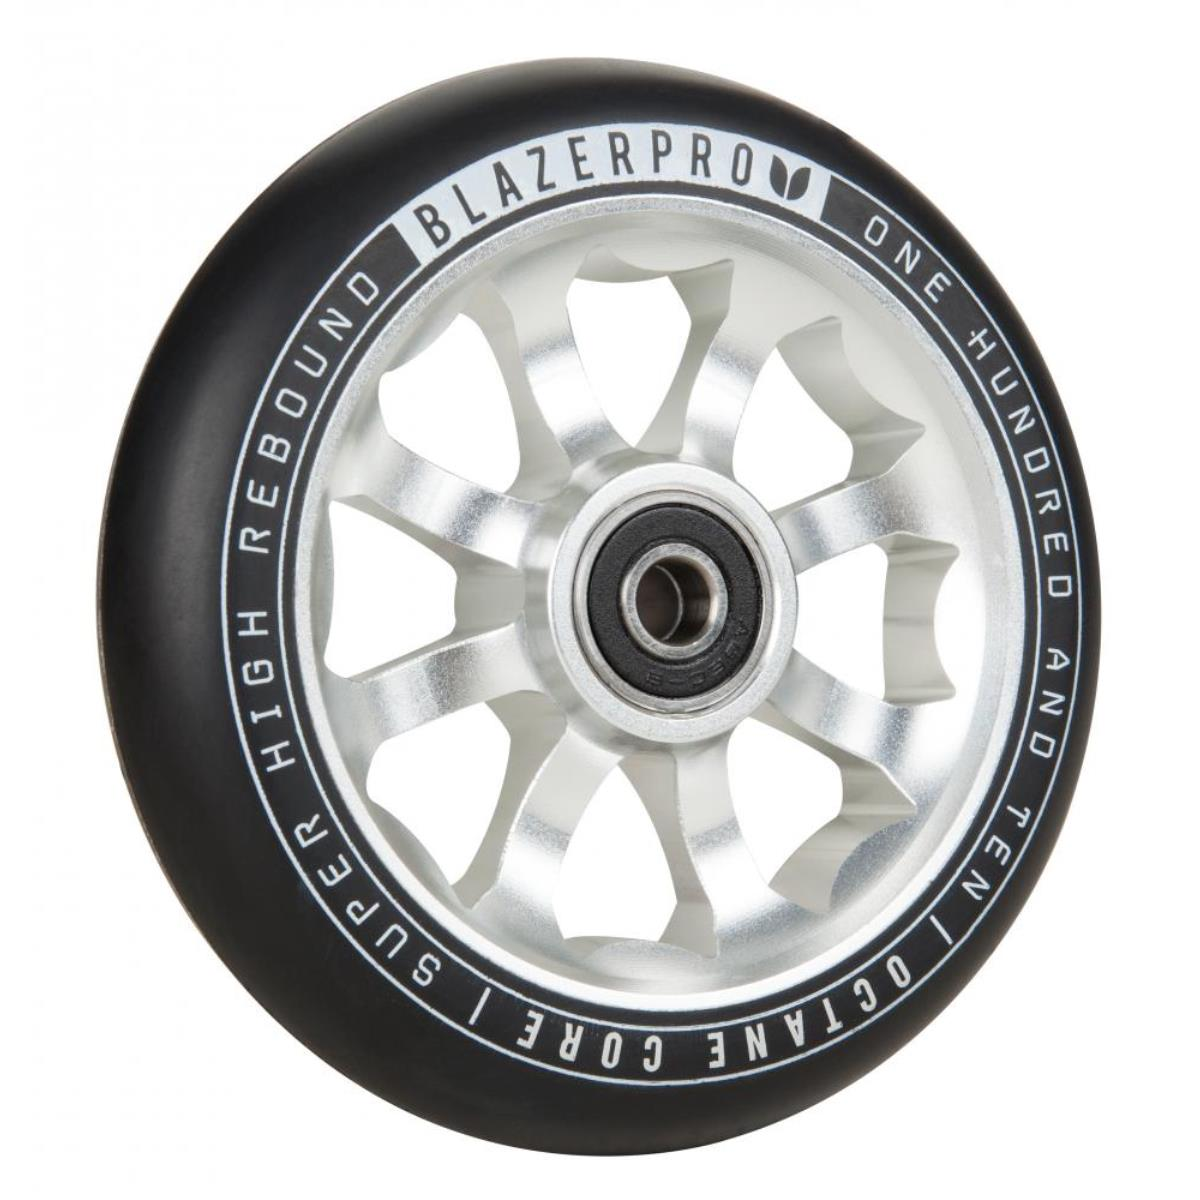 Blazer Pro Scooter Wheel Octane 110mm With Abec 9 Silver